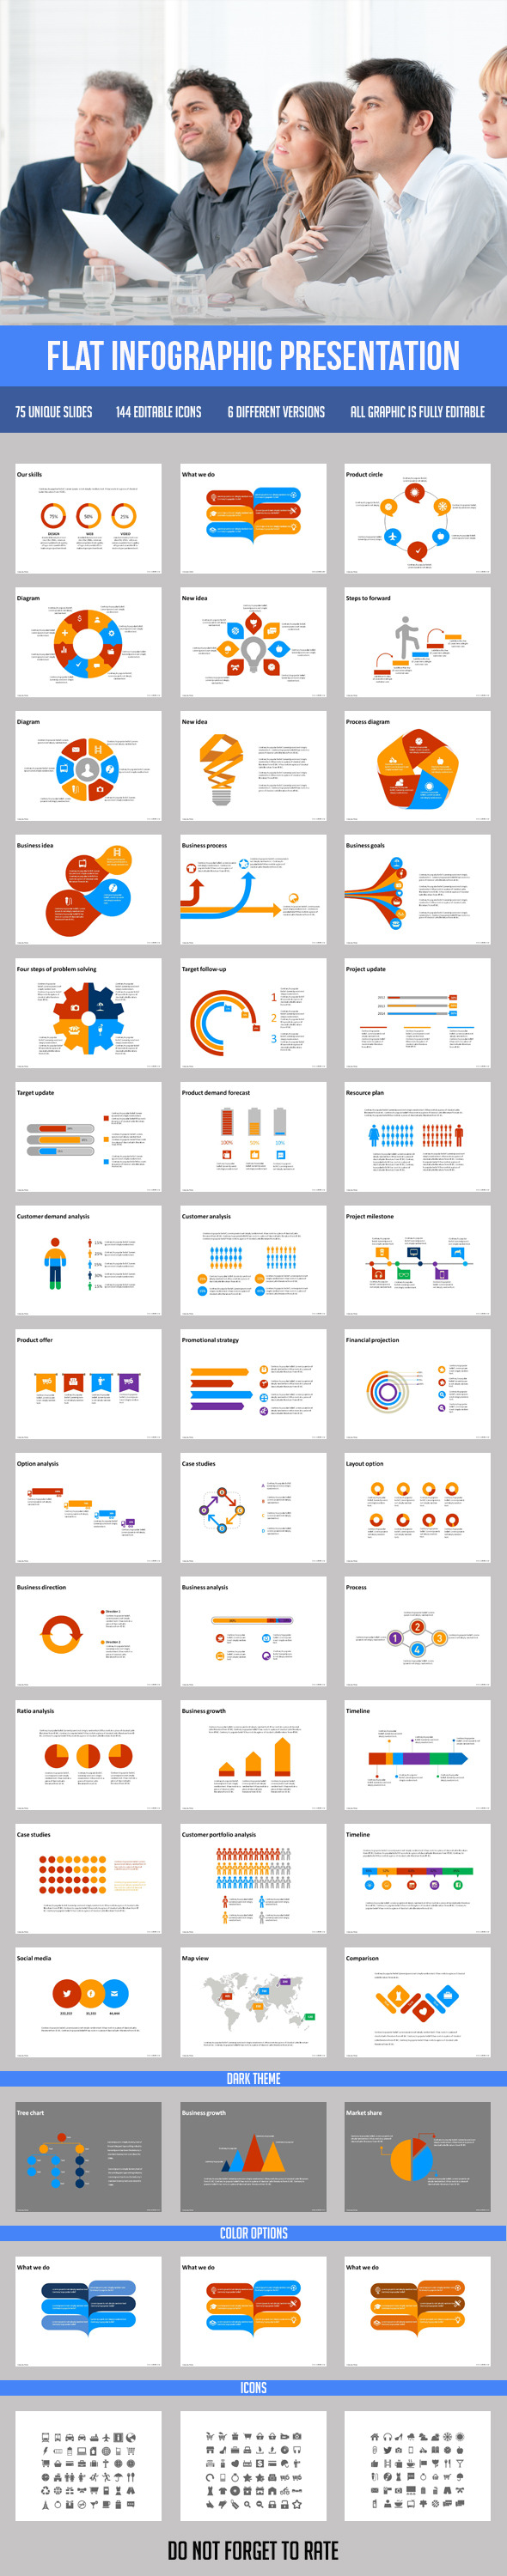 GraphicRiver Flat Infographic Presentation 9713127